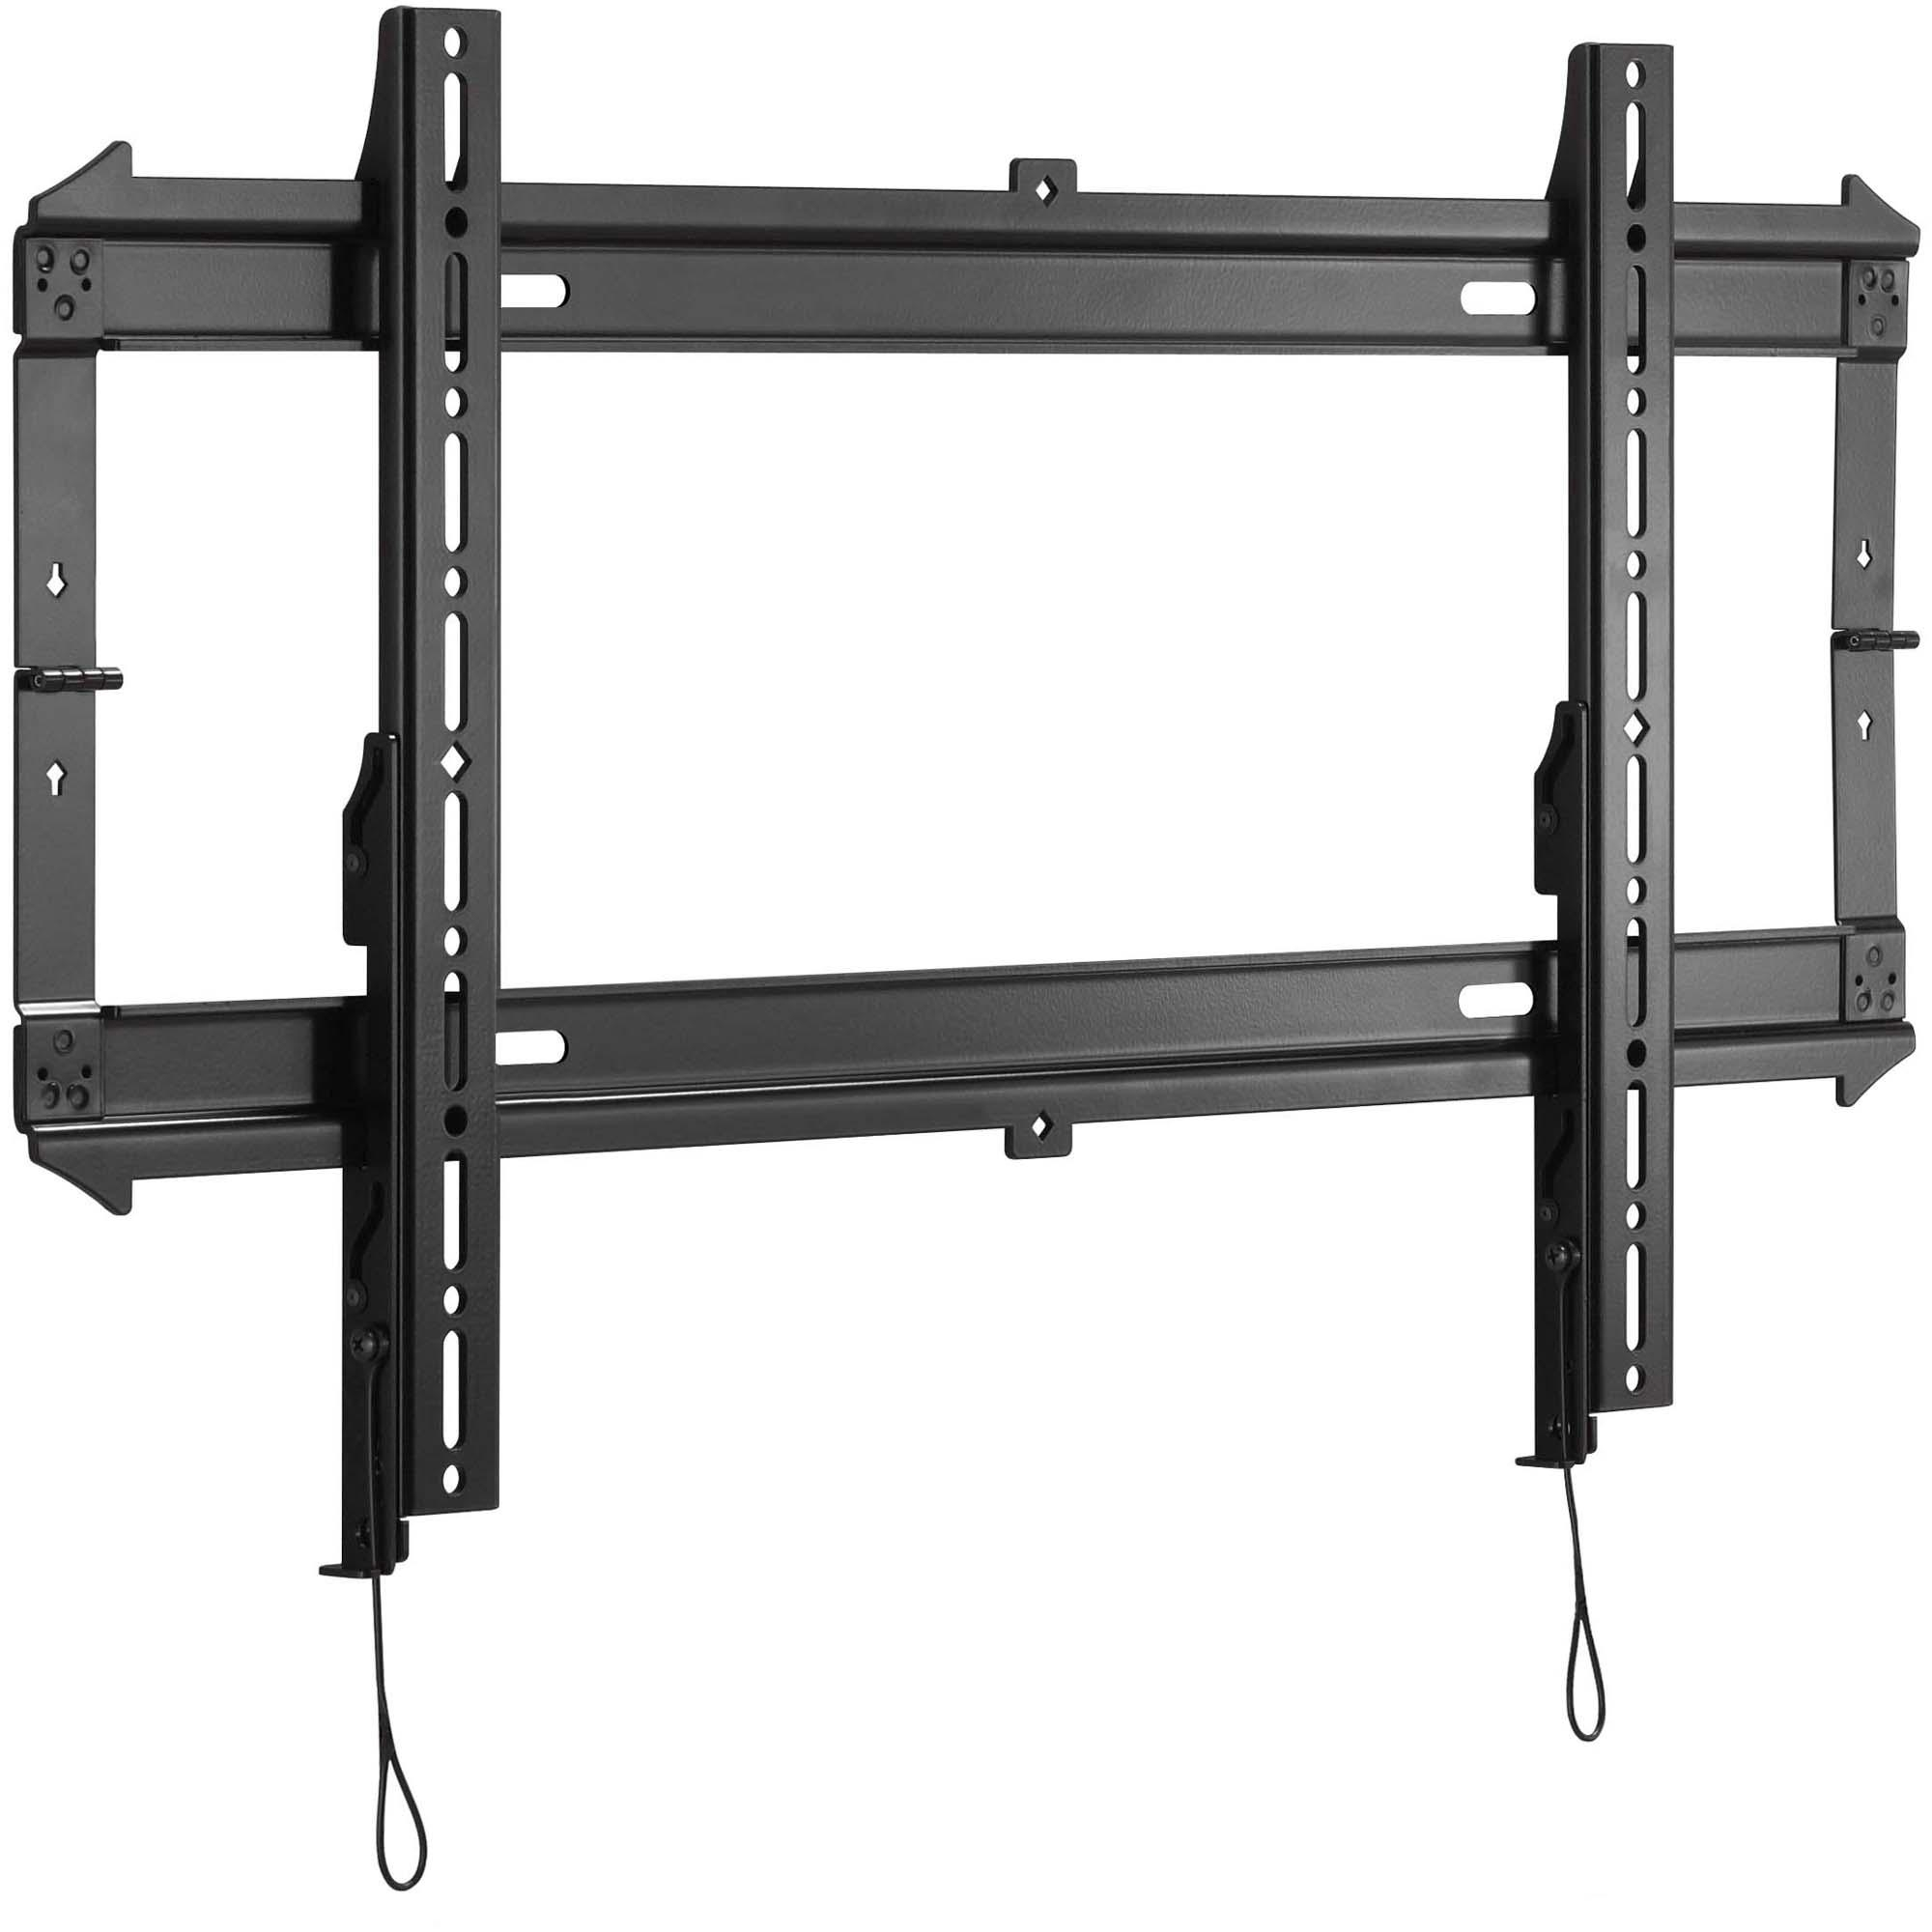 "Chief RLF2 Wall Mount for Flat Panel Display - 32"" to 52"" Screen (Refurbished)"